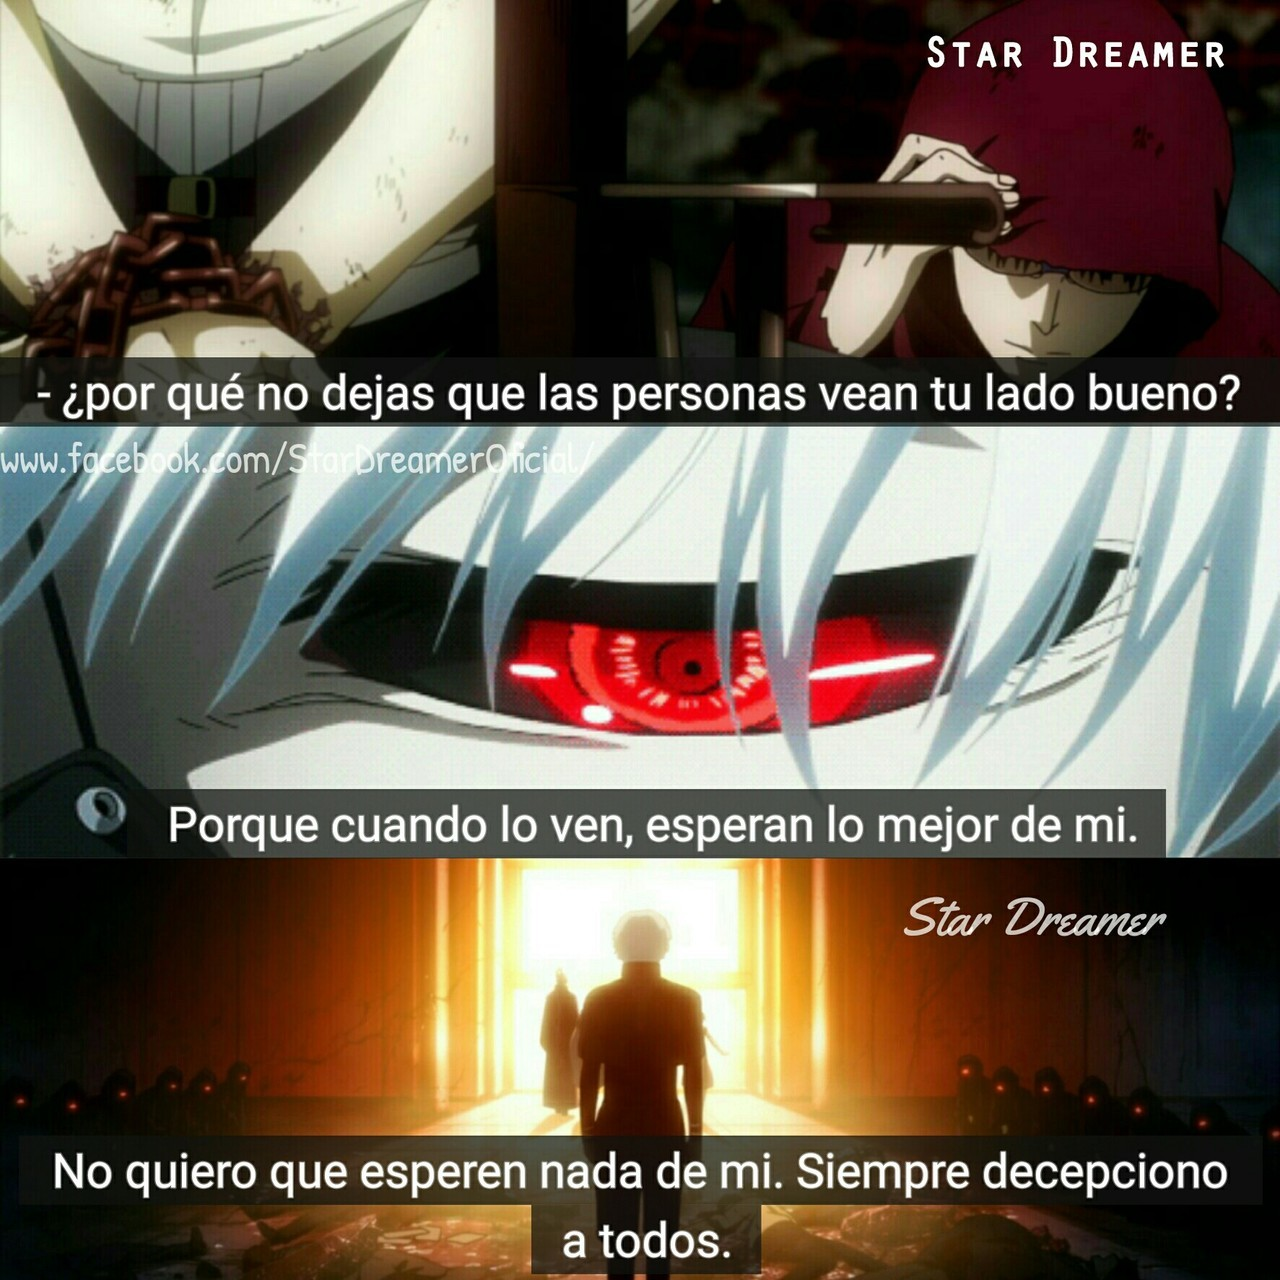 Image In Frases De Anime Collection By Jj Tapia